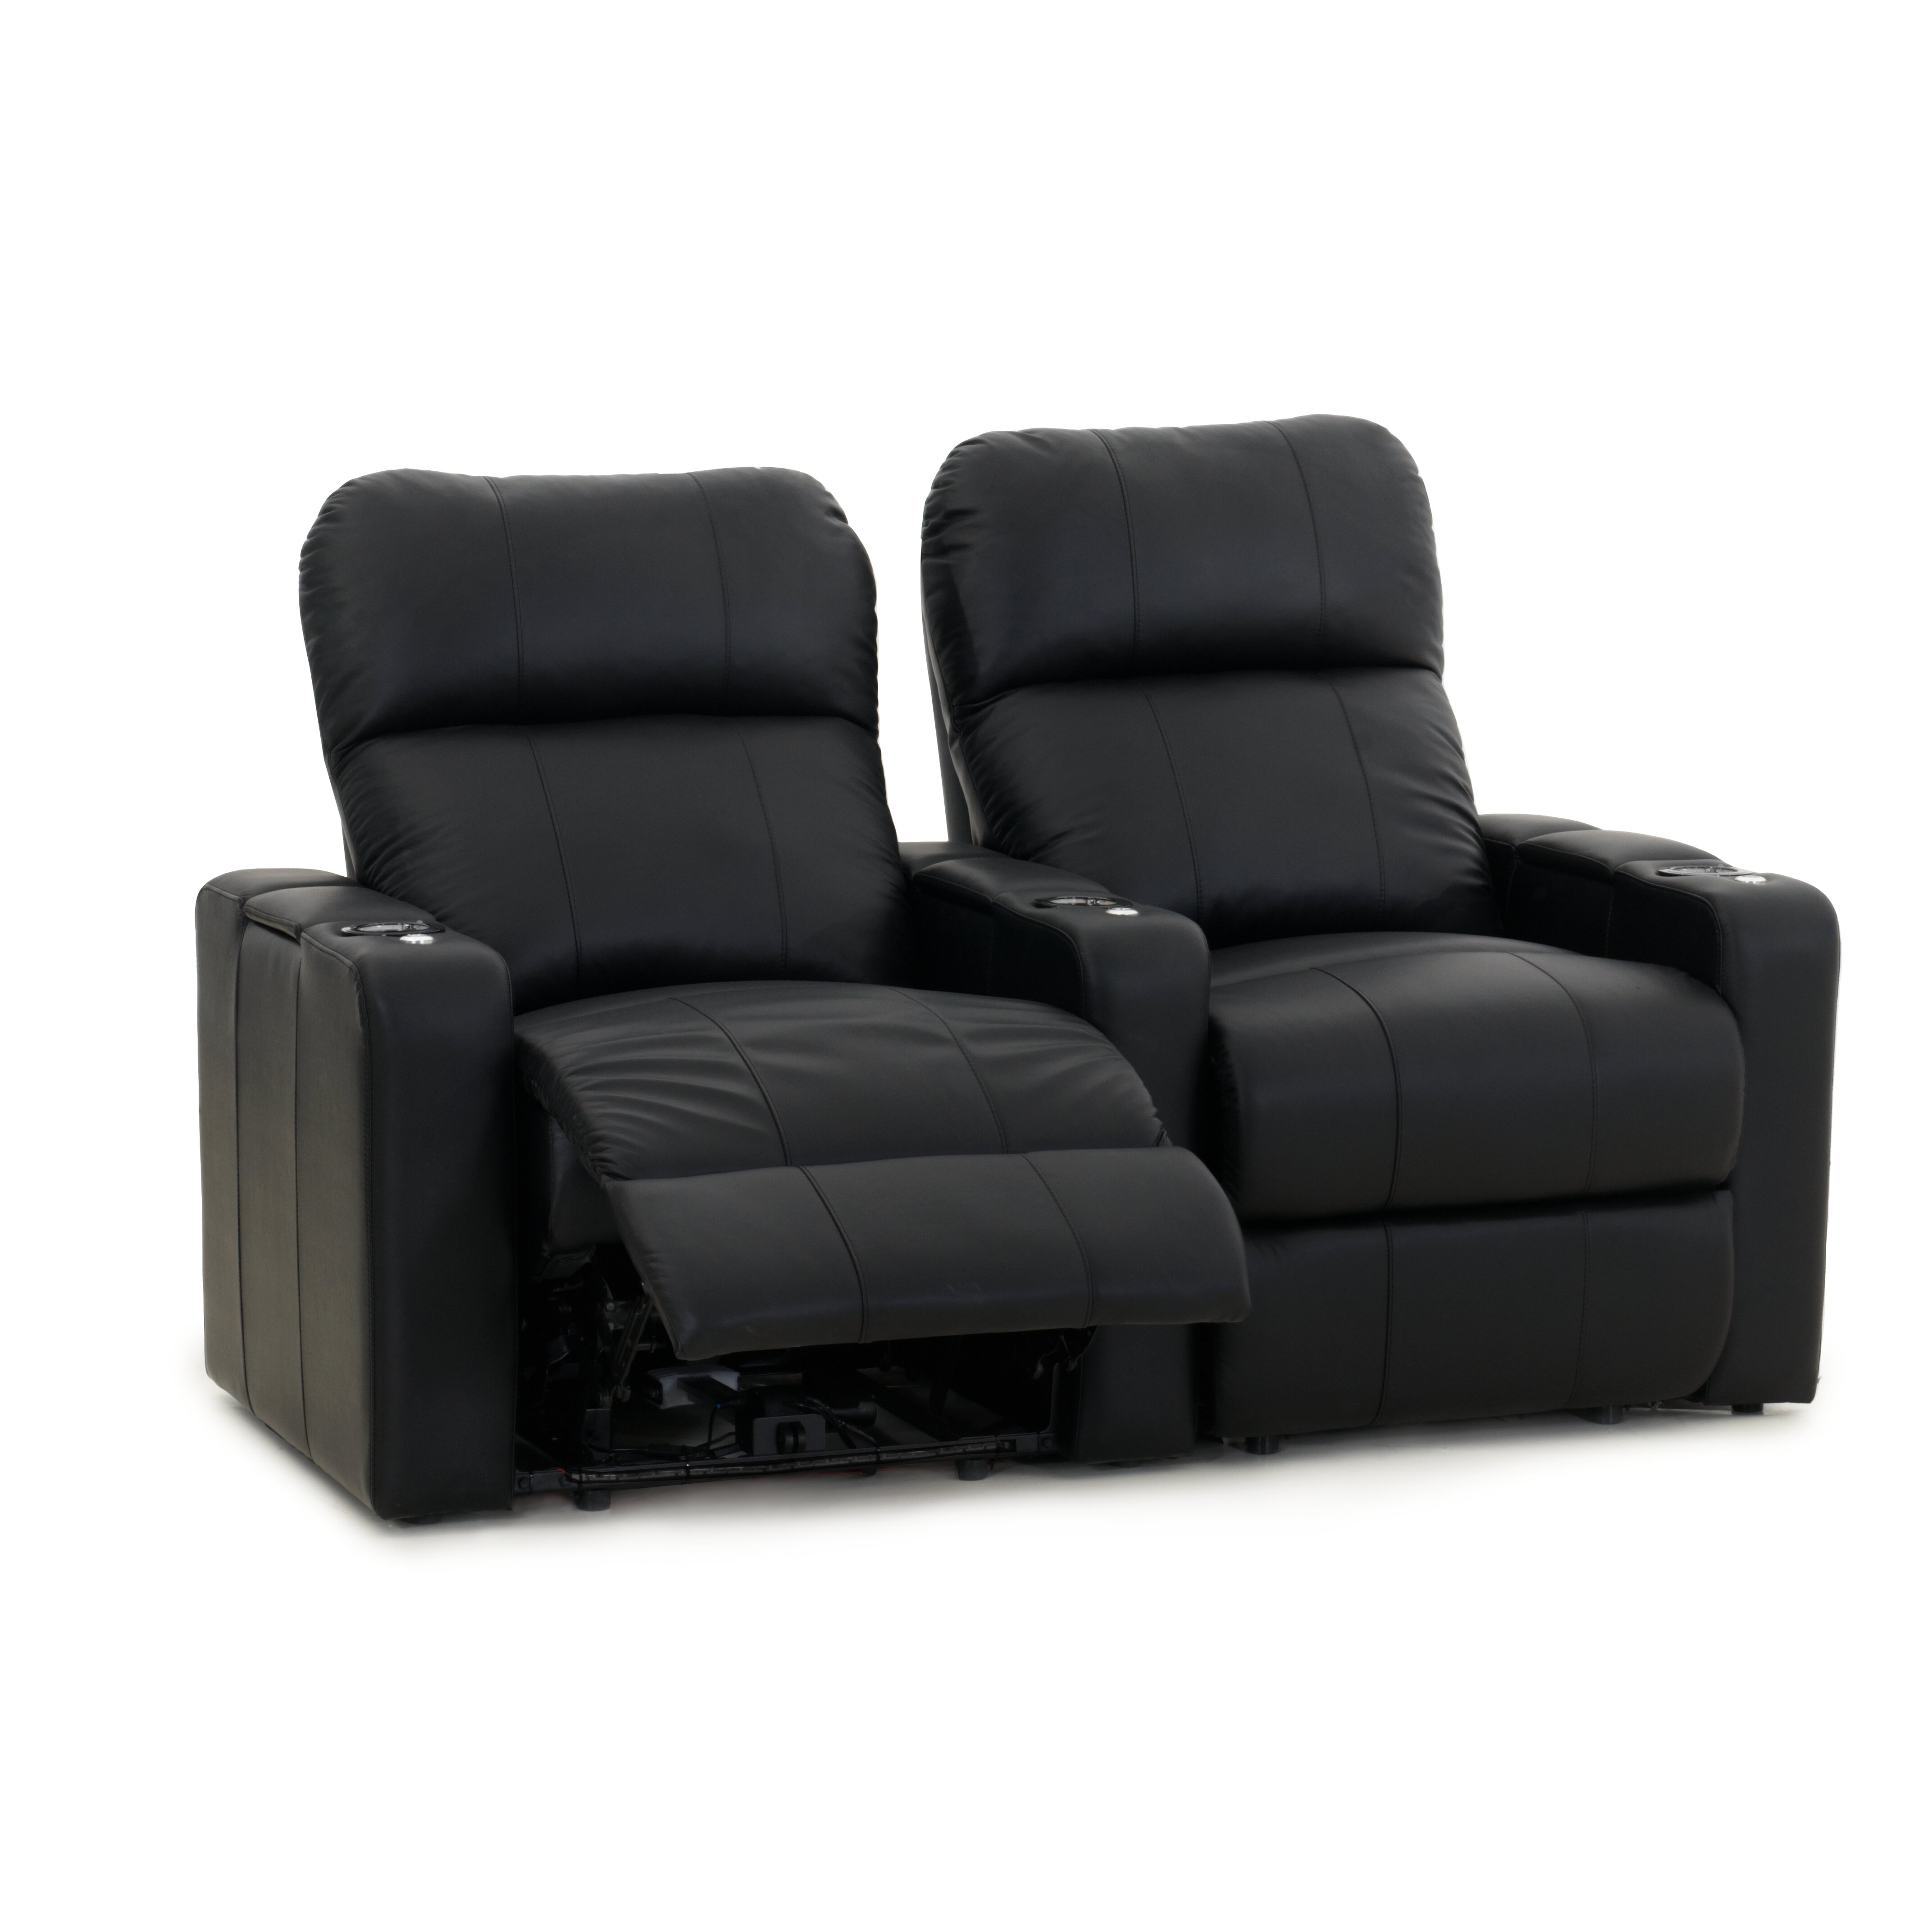 Octaneseating Turbo Xl700 Home Theater Recliner Row Of 2